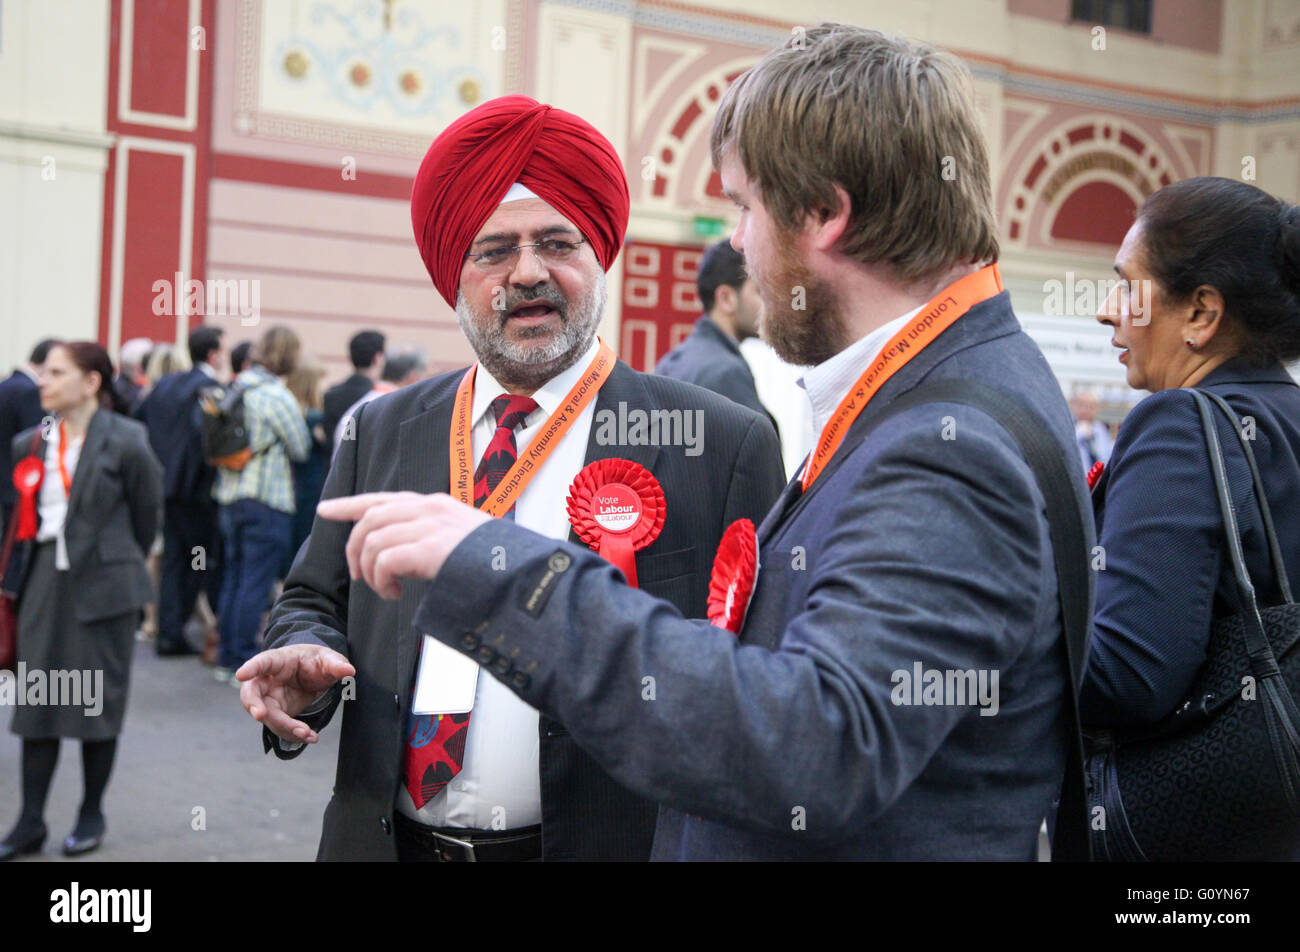 Alexandra Palace, London 6 May 2016 - Candidates, agents and observers at the count. The counting of the ballot - Stock Image